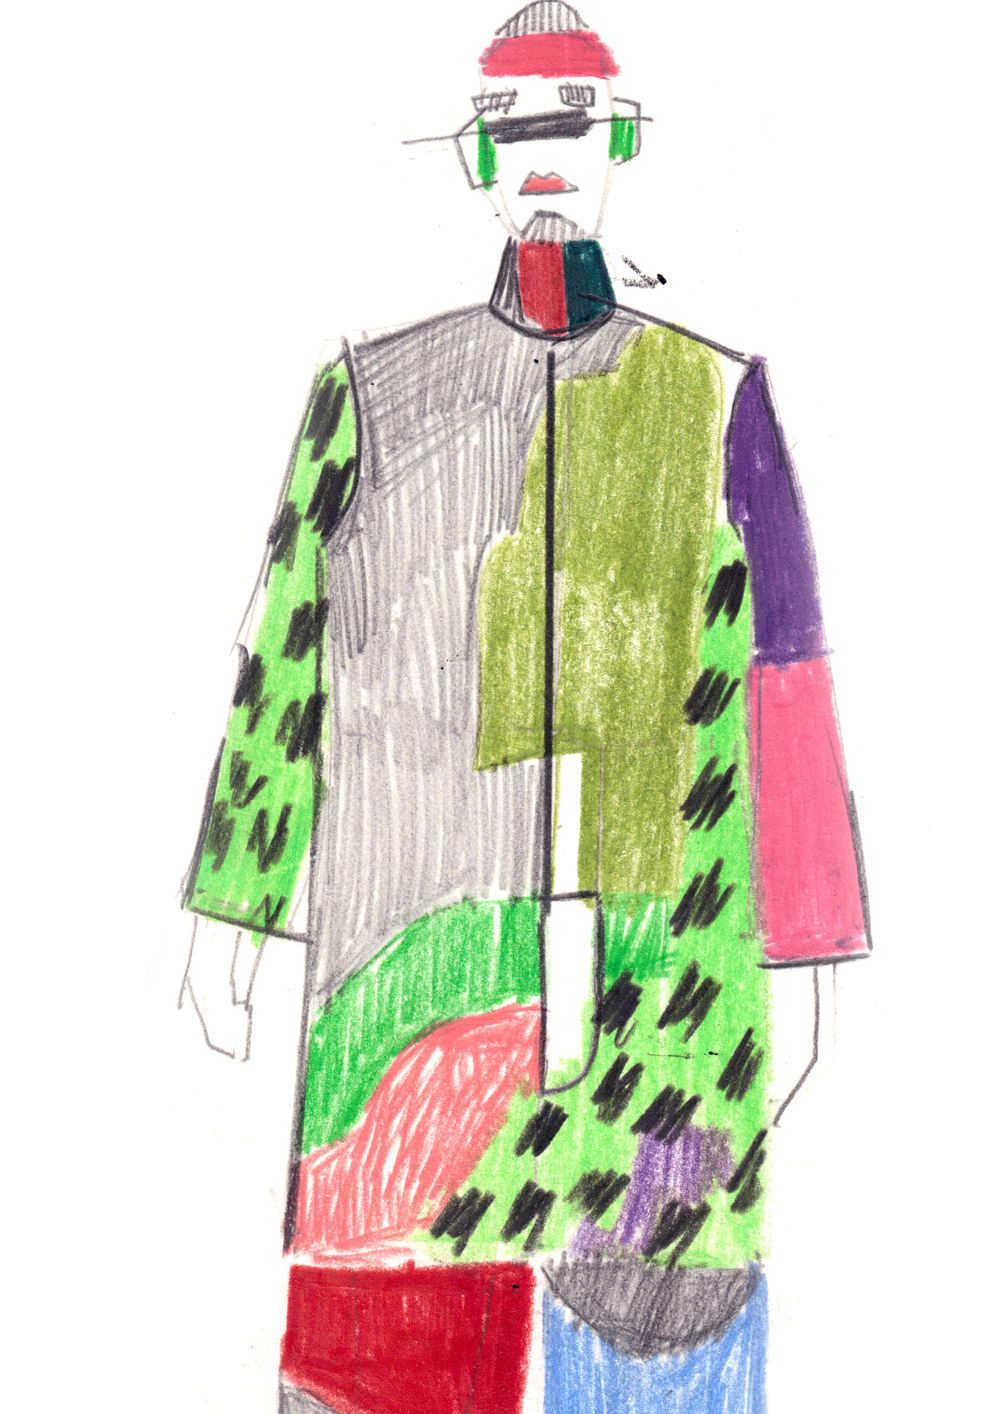 sketch from previous collection by: Marie-Sophie Beinke